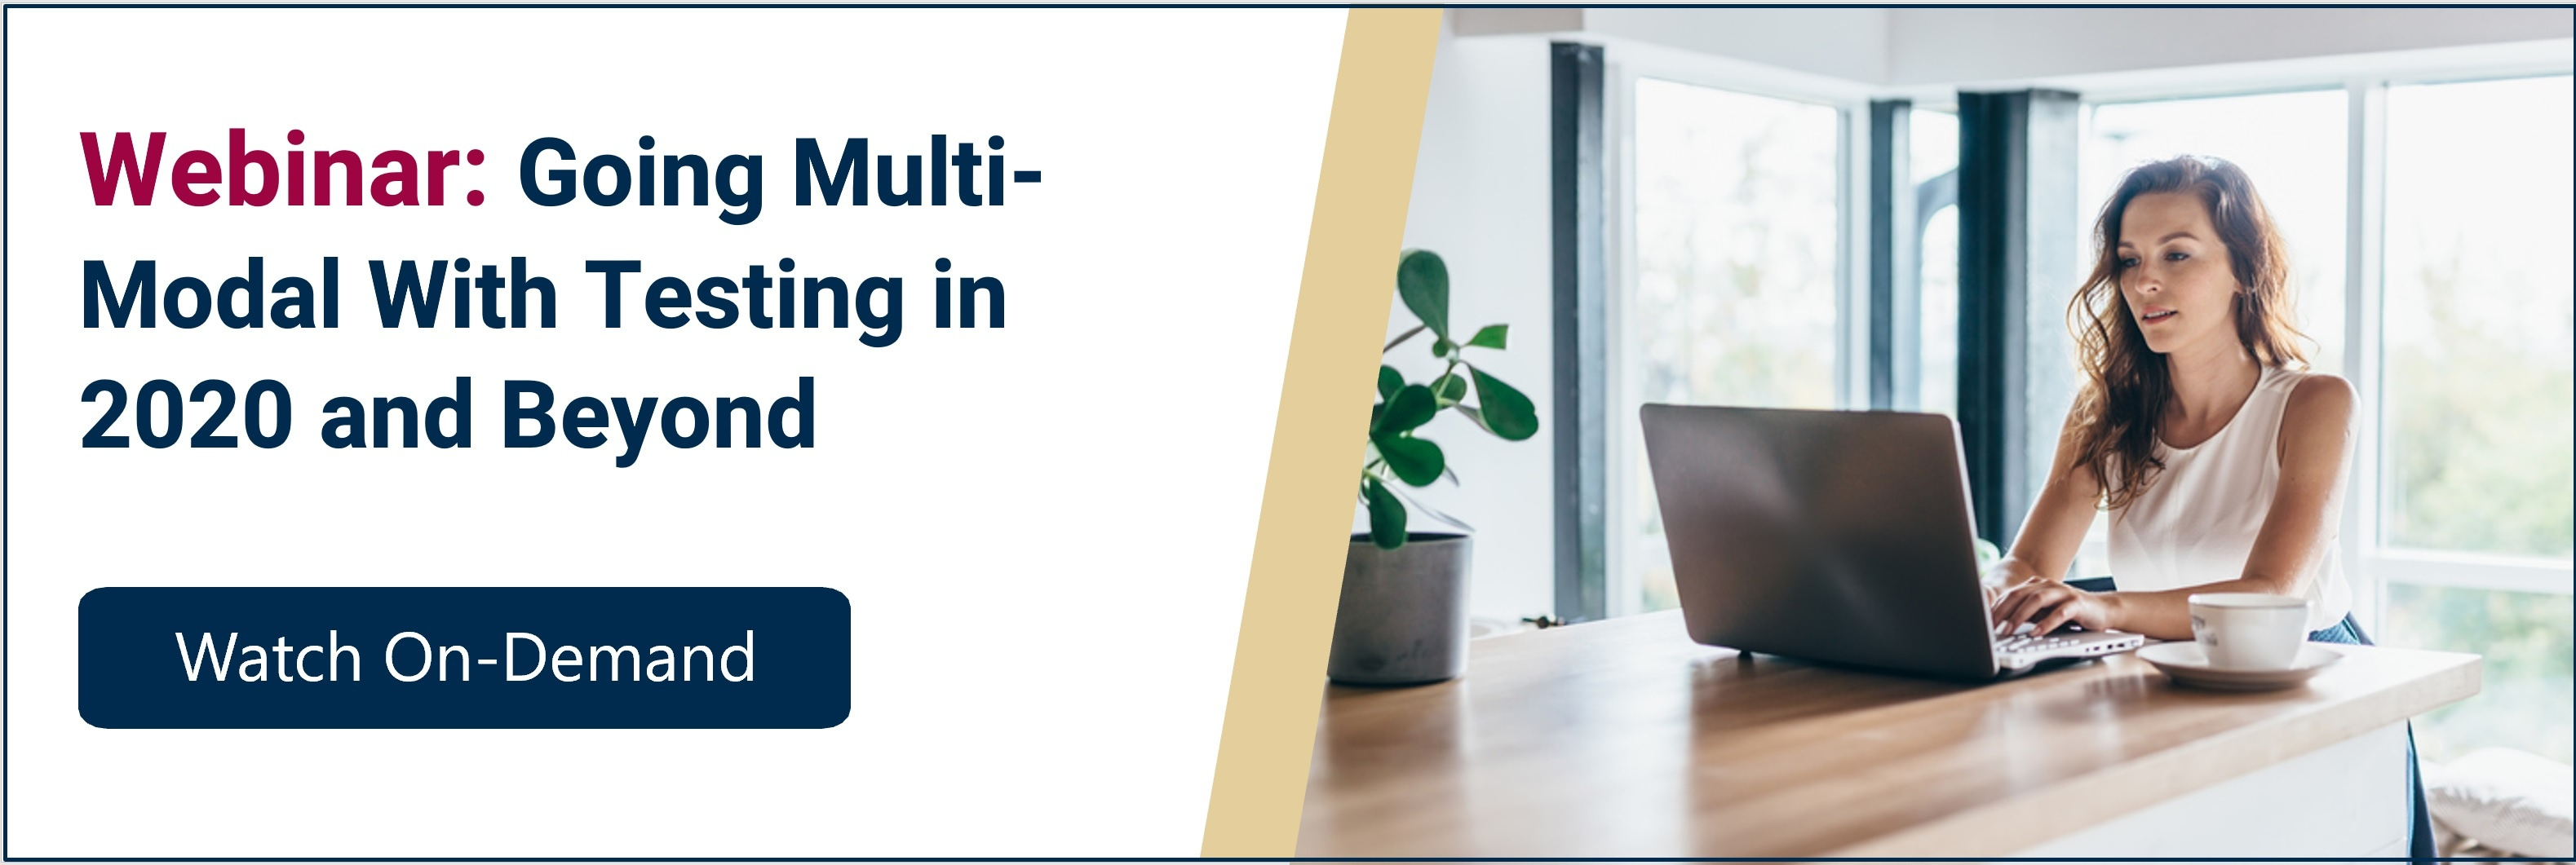 Multi-Modal Testing Webinar 2020 and Beyond